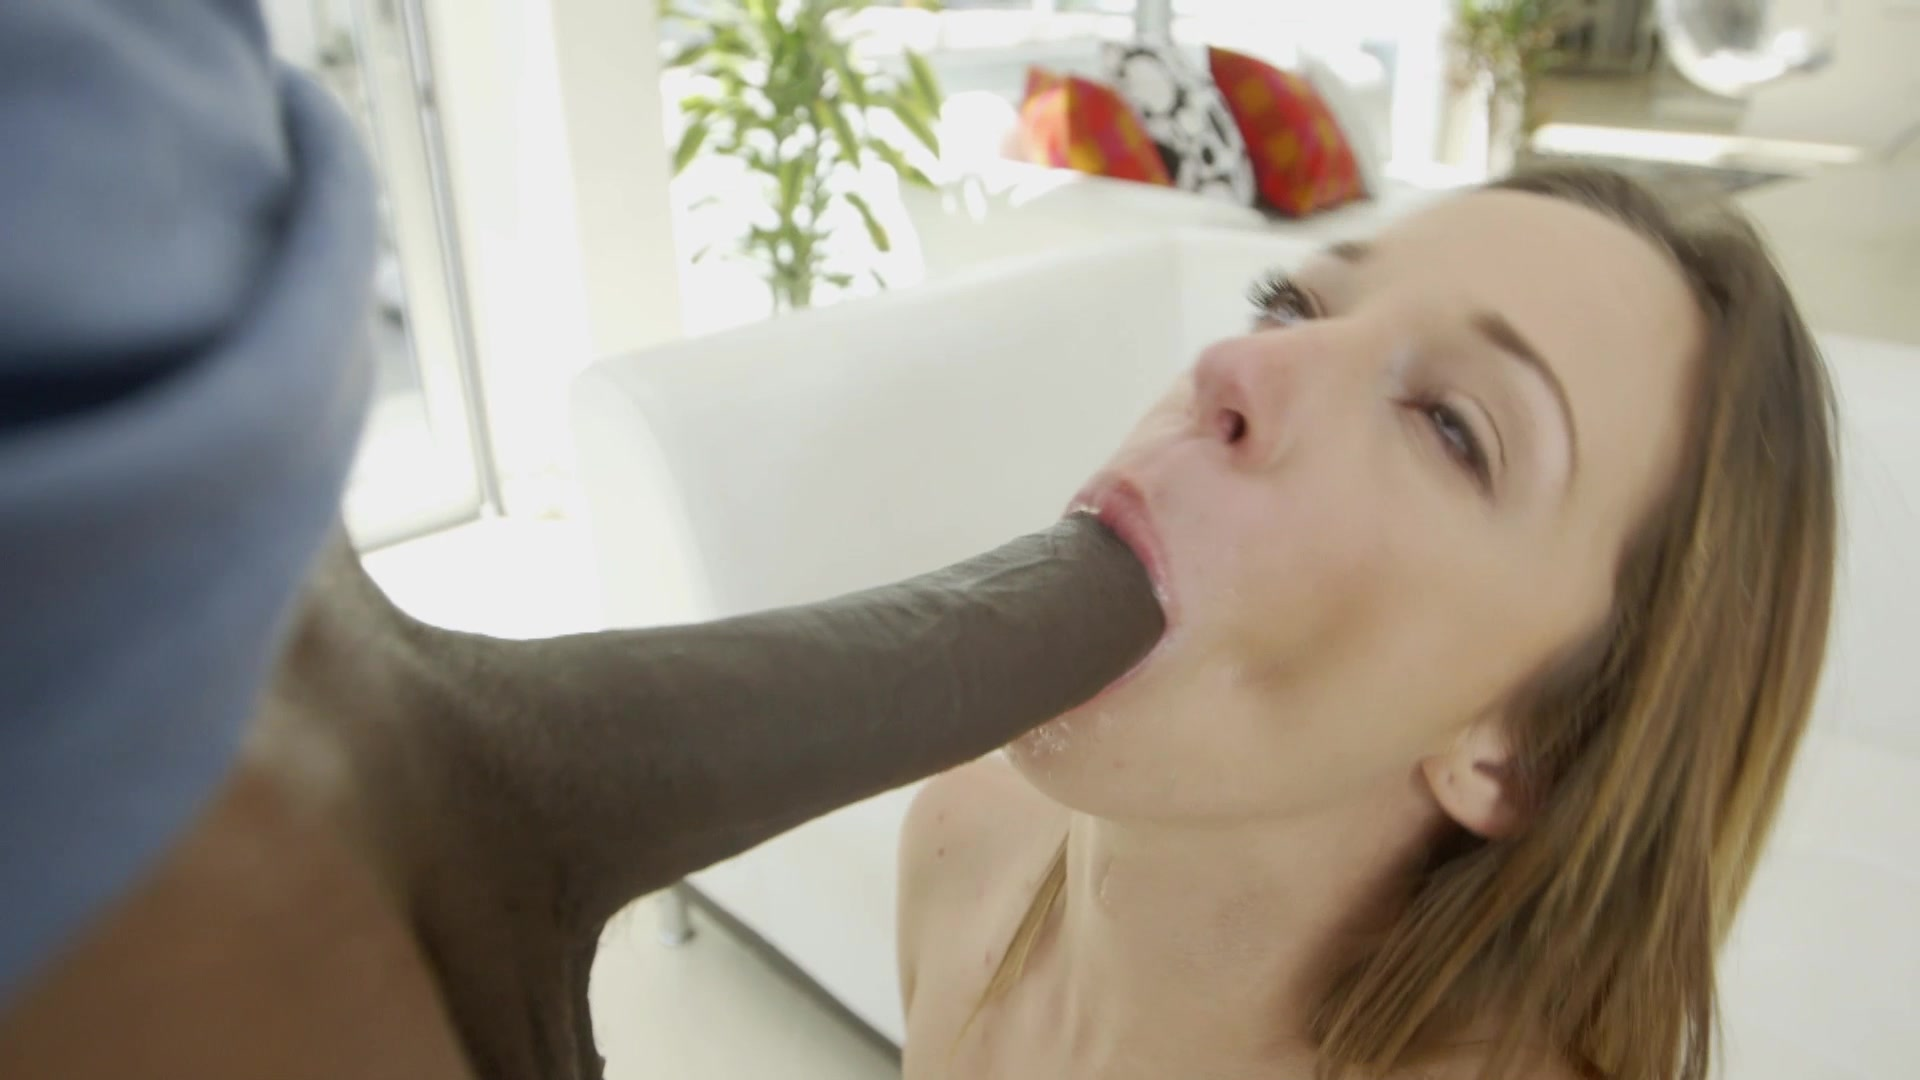 See interracial porn trailer